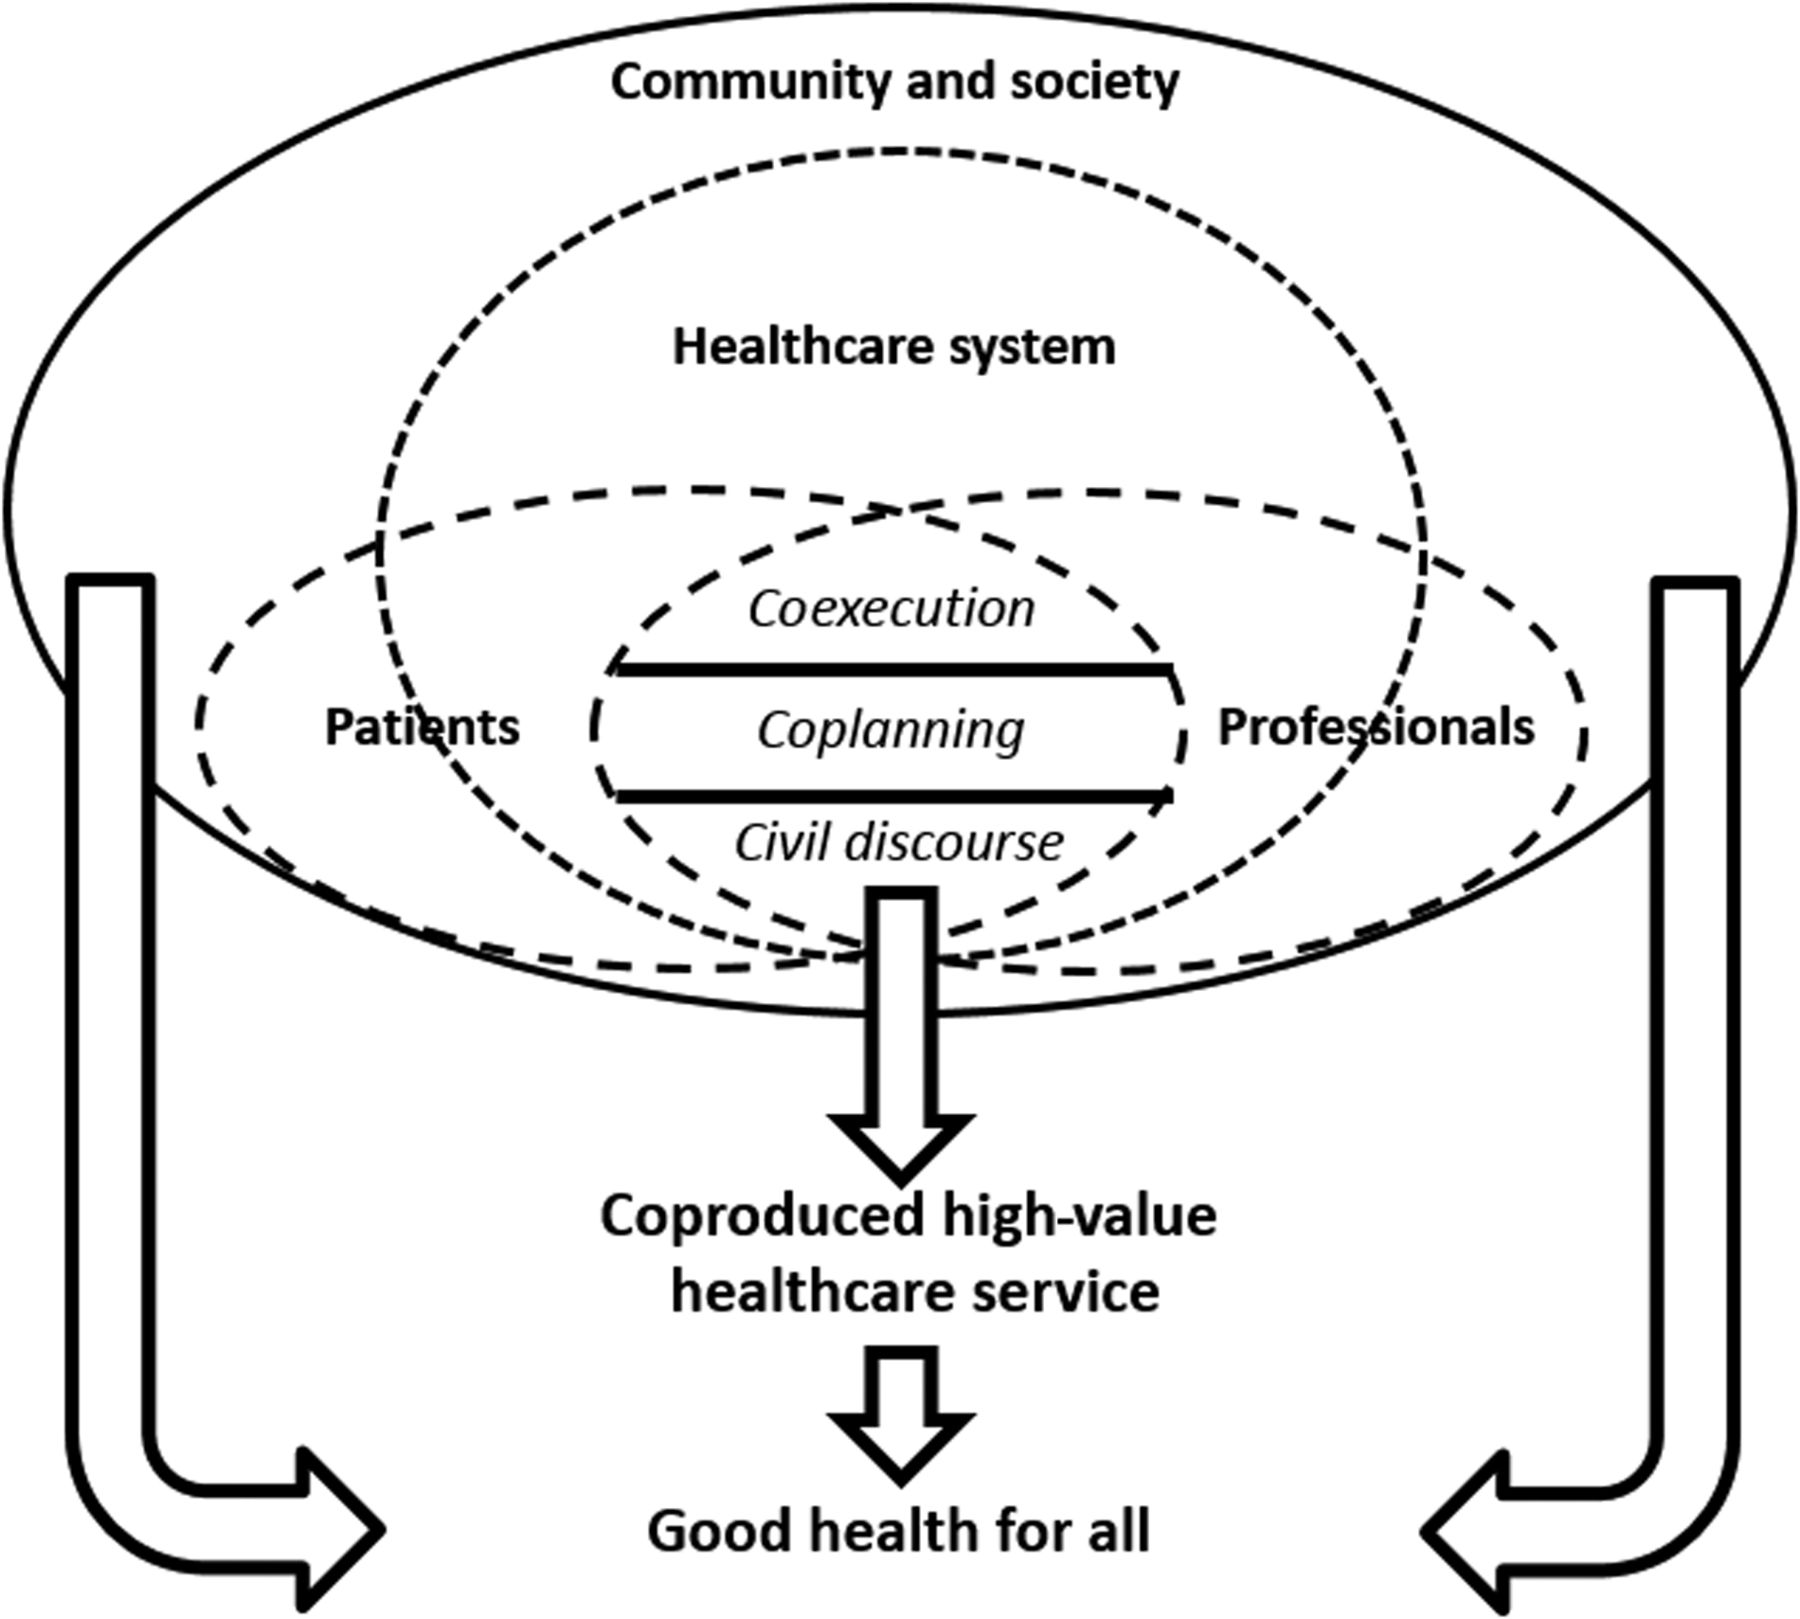 Coproduction Of Healthcare Service